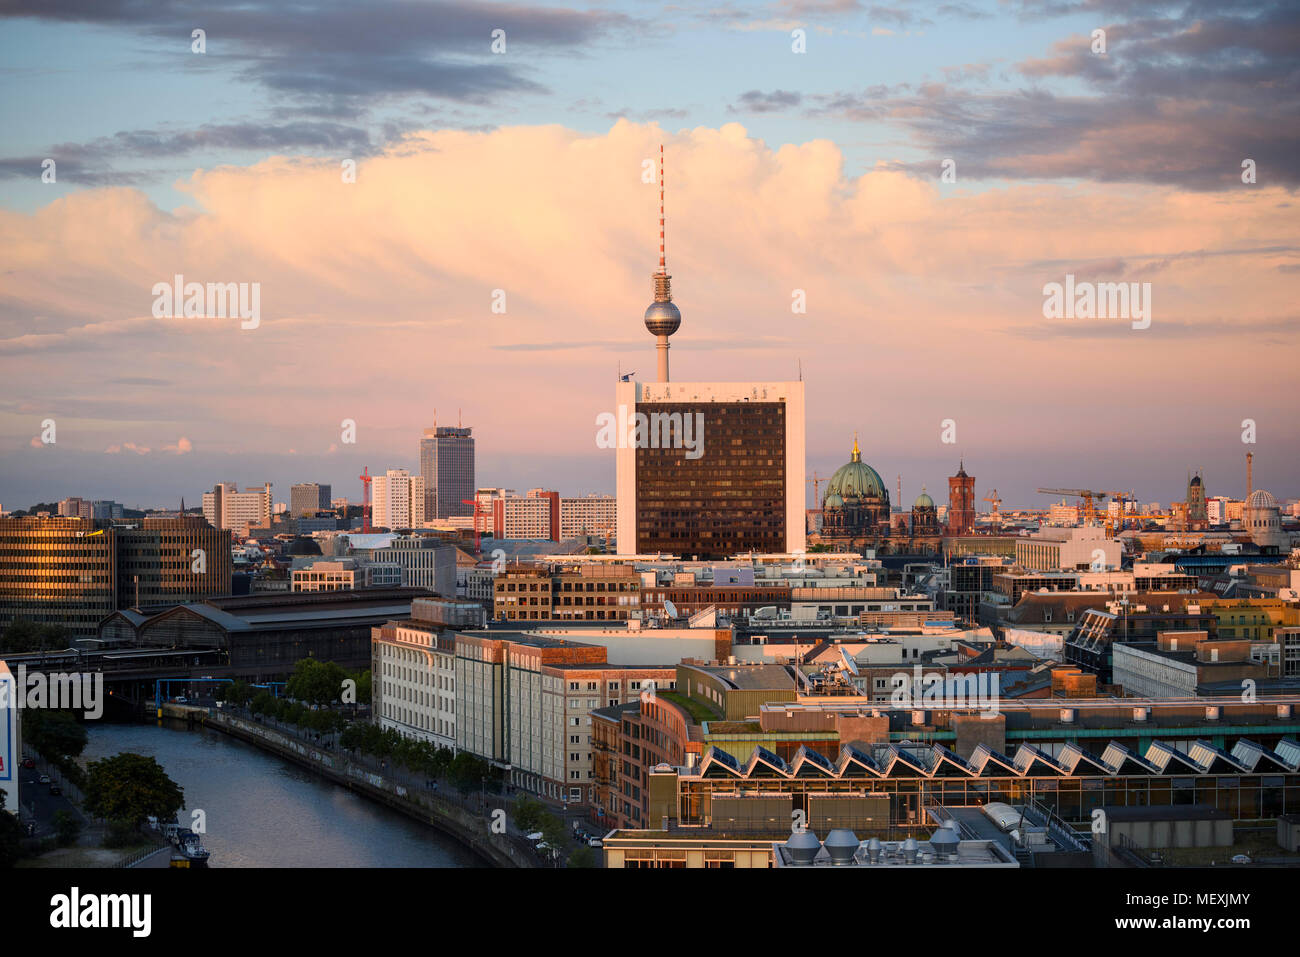 Berlin. Germany. View looking east of the Berlin skyline from the Reichstag dome towards the Fernsehturm (TV tower) on Alexanderplatz, Mitte. The view - Stock Image